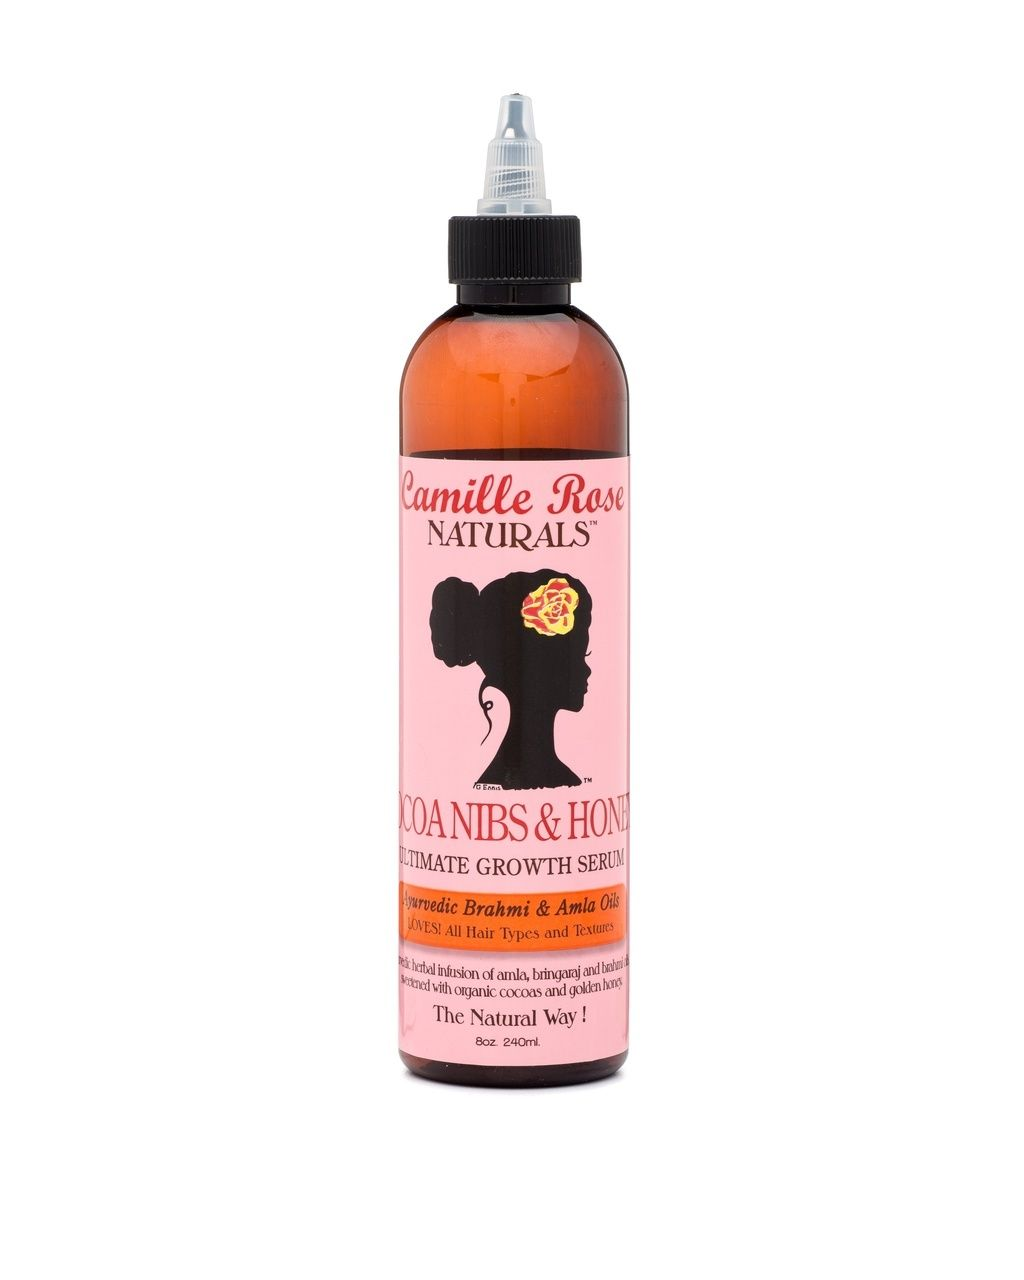 Cocoa Nibs & Honey Ultimate Growth Serum CAMILLE ROSE